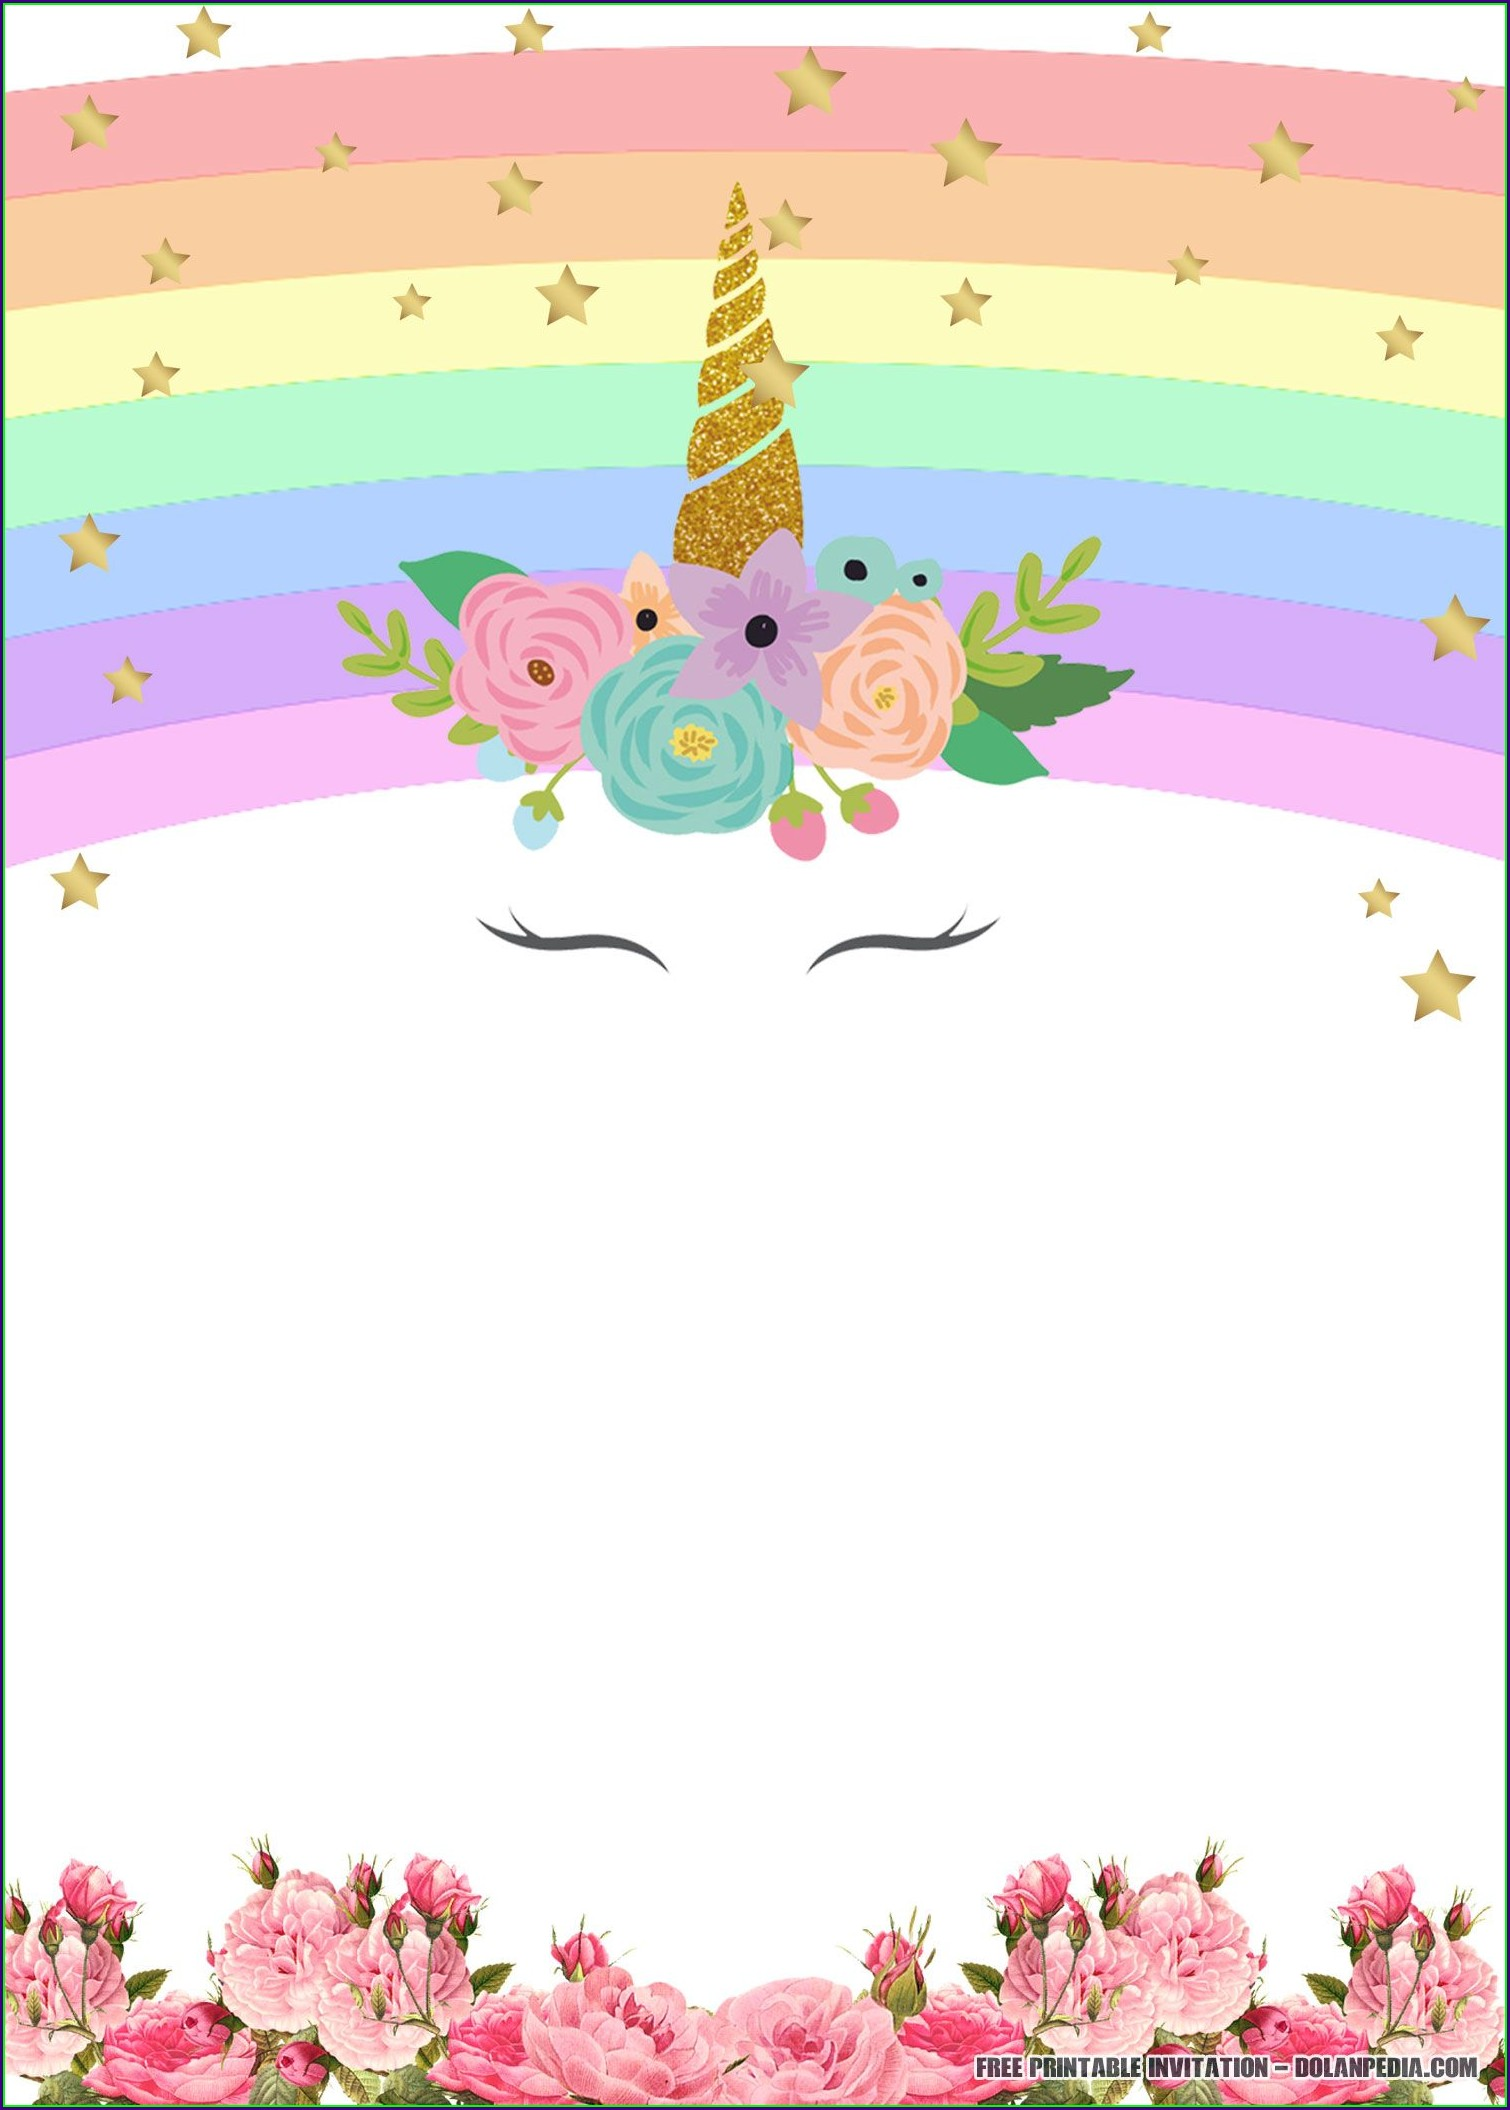 Editable Downloadable Free Unicorn Invitation Template